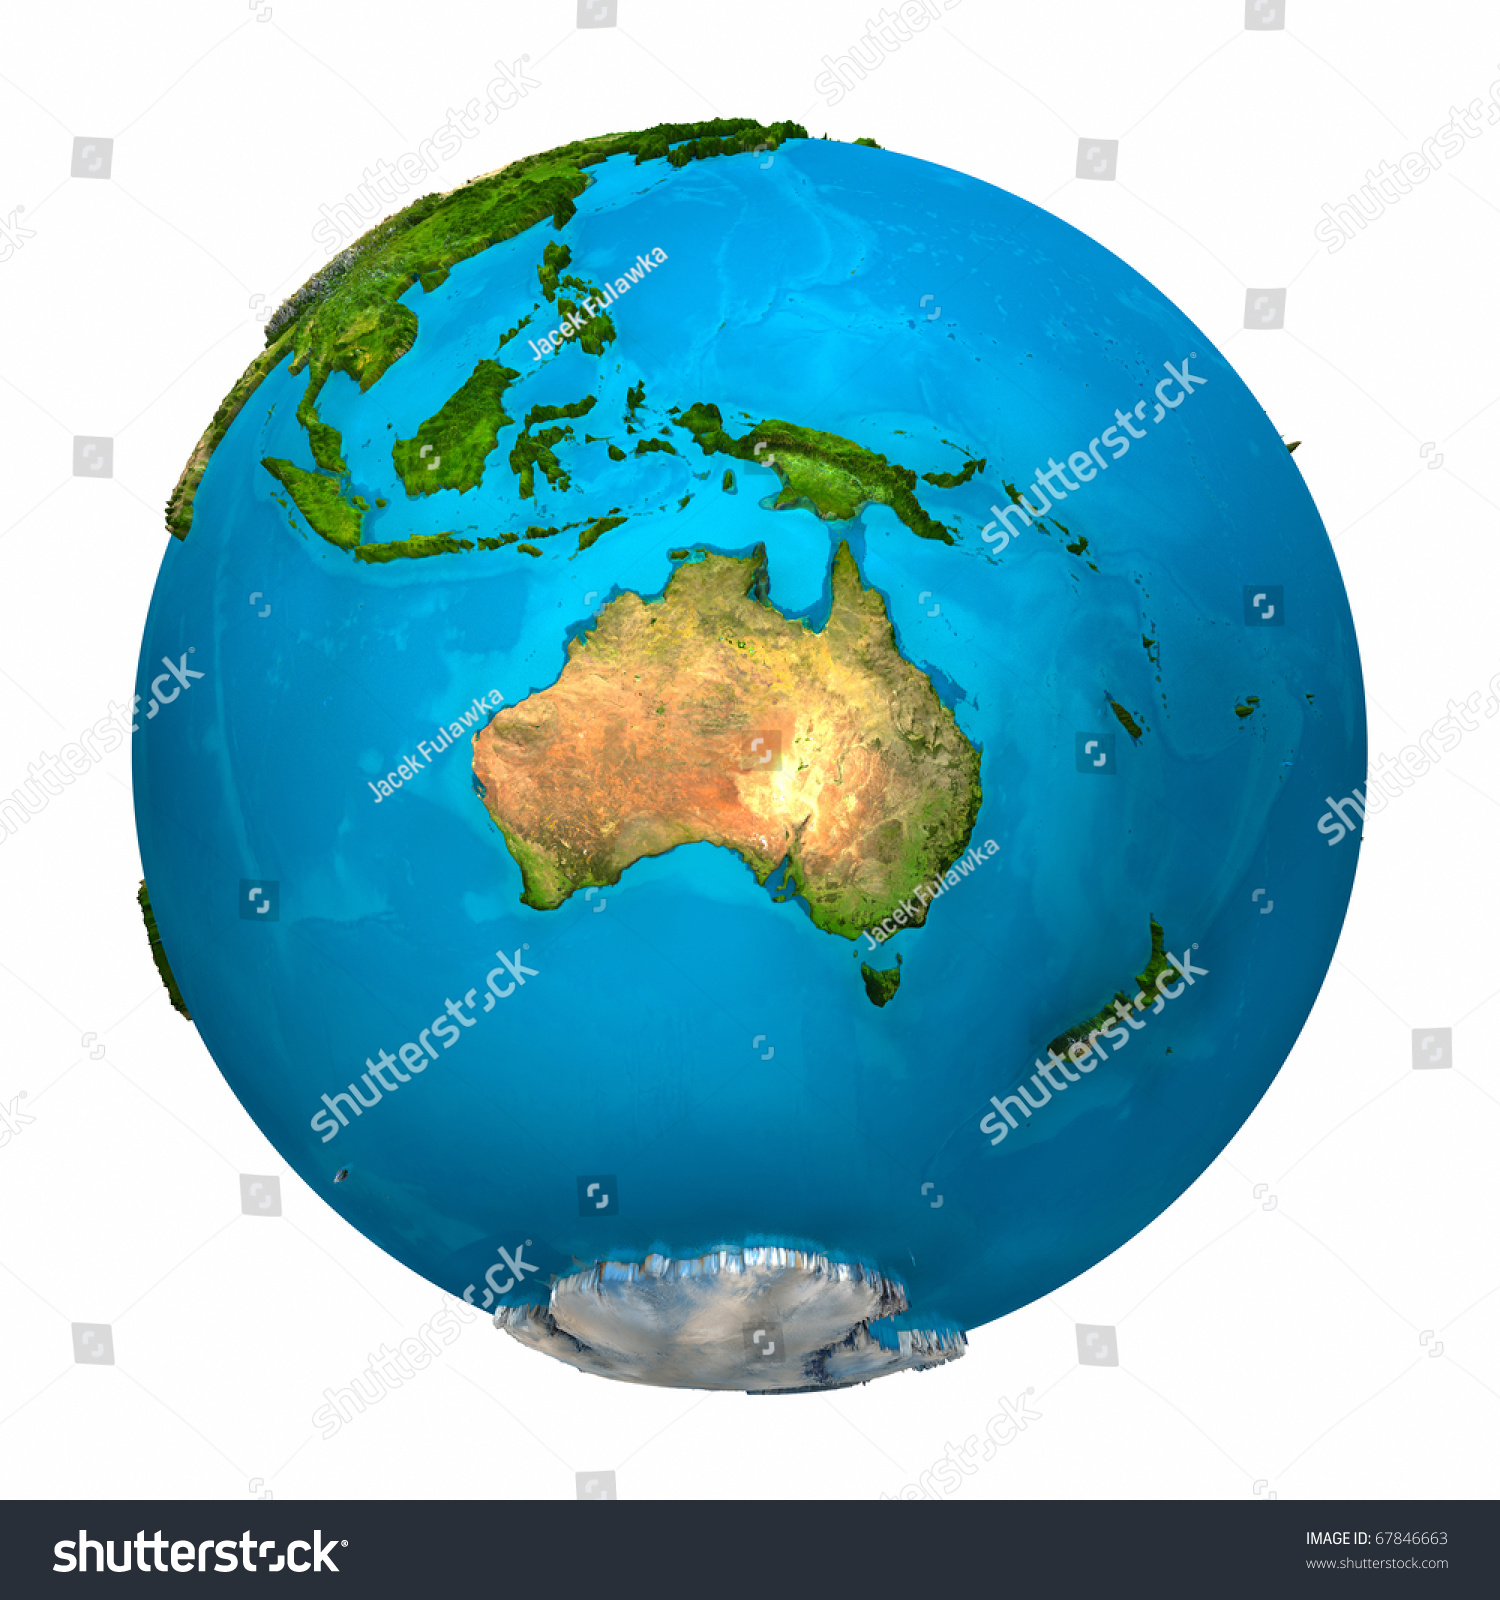 Planet earth australia colorful globe detailed stock illustration planet earth australia colorful globe with detailed and realistic surface 3d render gumiabroncs Image collections